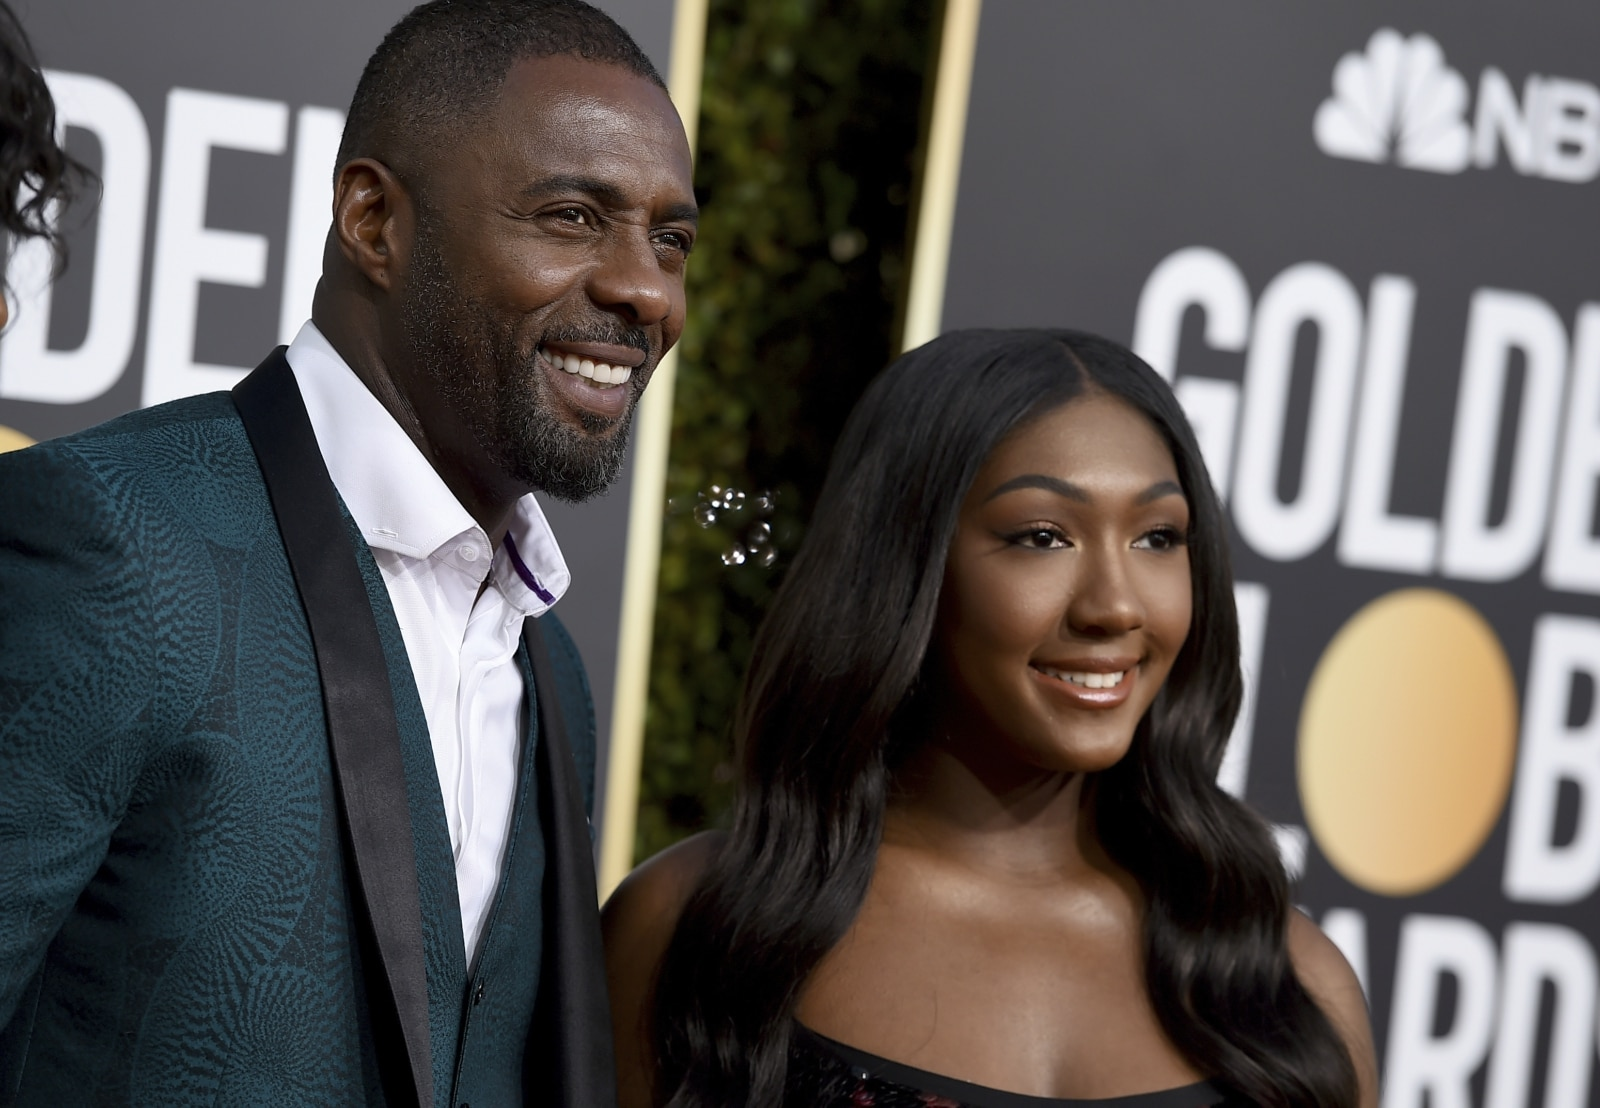 Idris Elba, left, and his daughter Isan Elba arrive at the 76th annual Golden Globe Awards at the Beverly Hilton Hotel on Sunday, January 6, 2019, in Beverly Hills, California<strong>.</strong> (Photo by Jordan Strauss/Invision/AP)